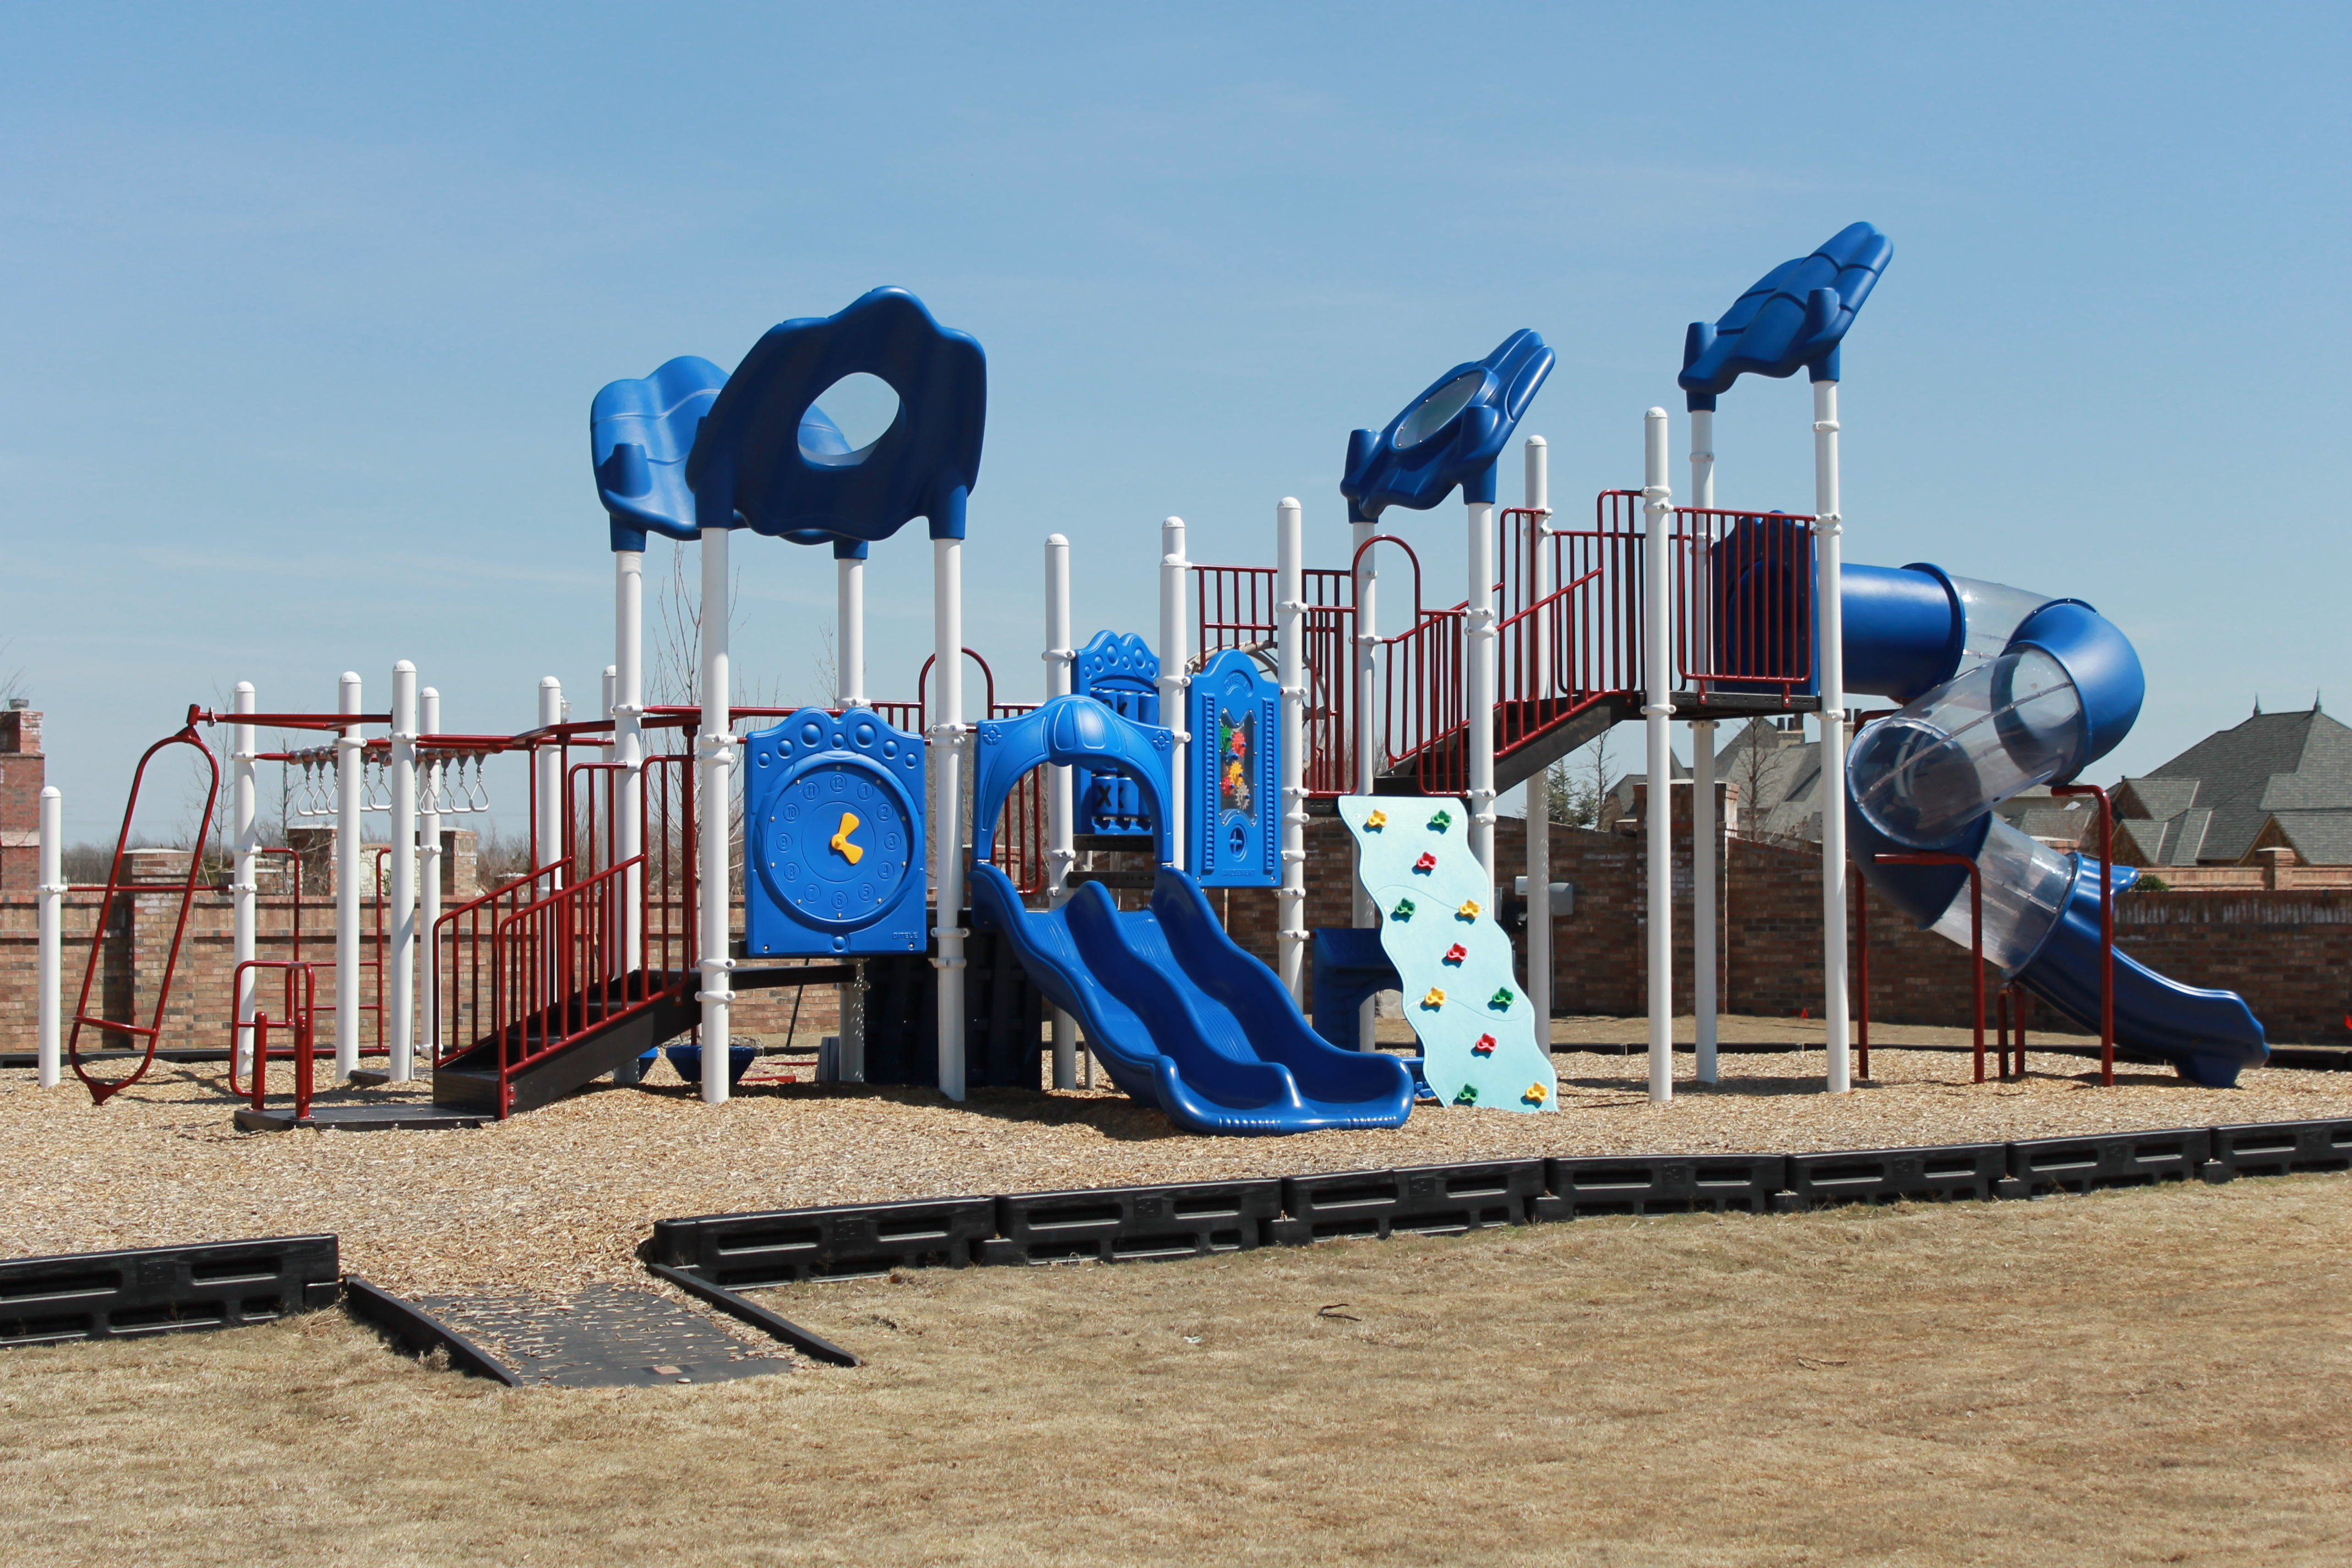 Noahs Park and Playgrounds, LLC image 16